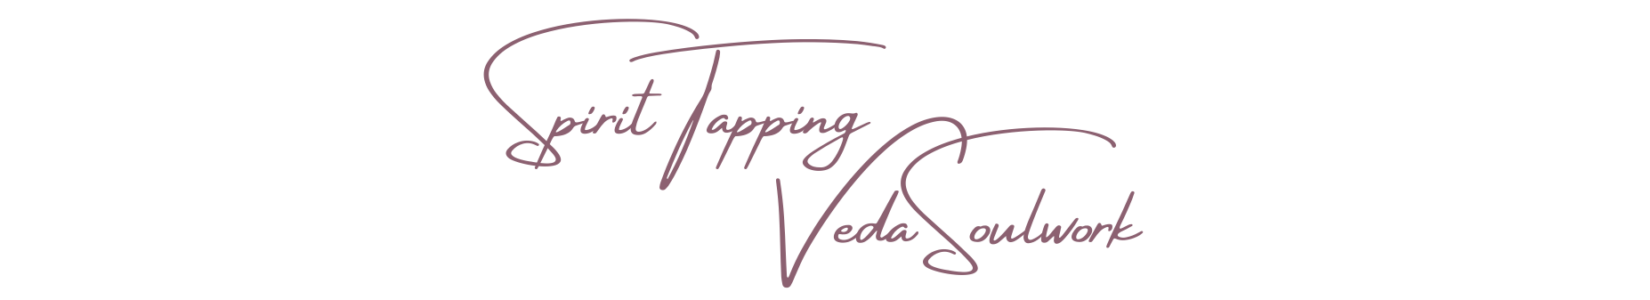 AH Spirit Tapping Veda Soulwork 1650x350px